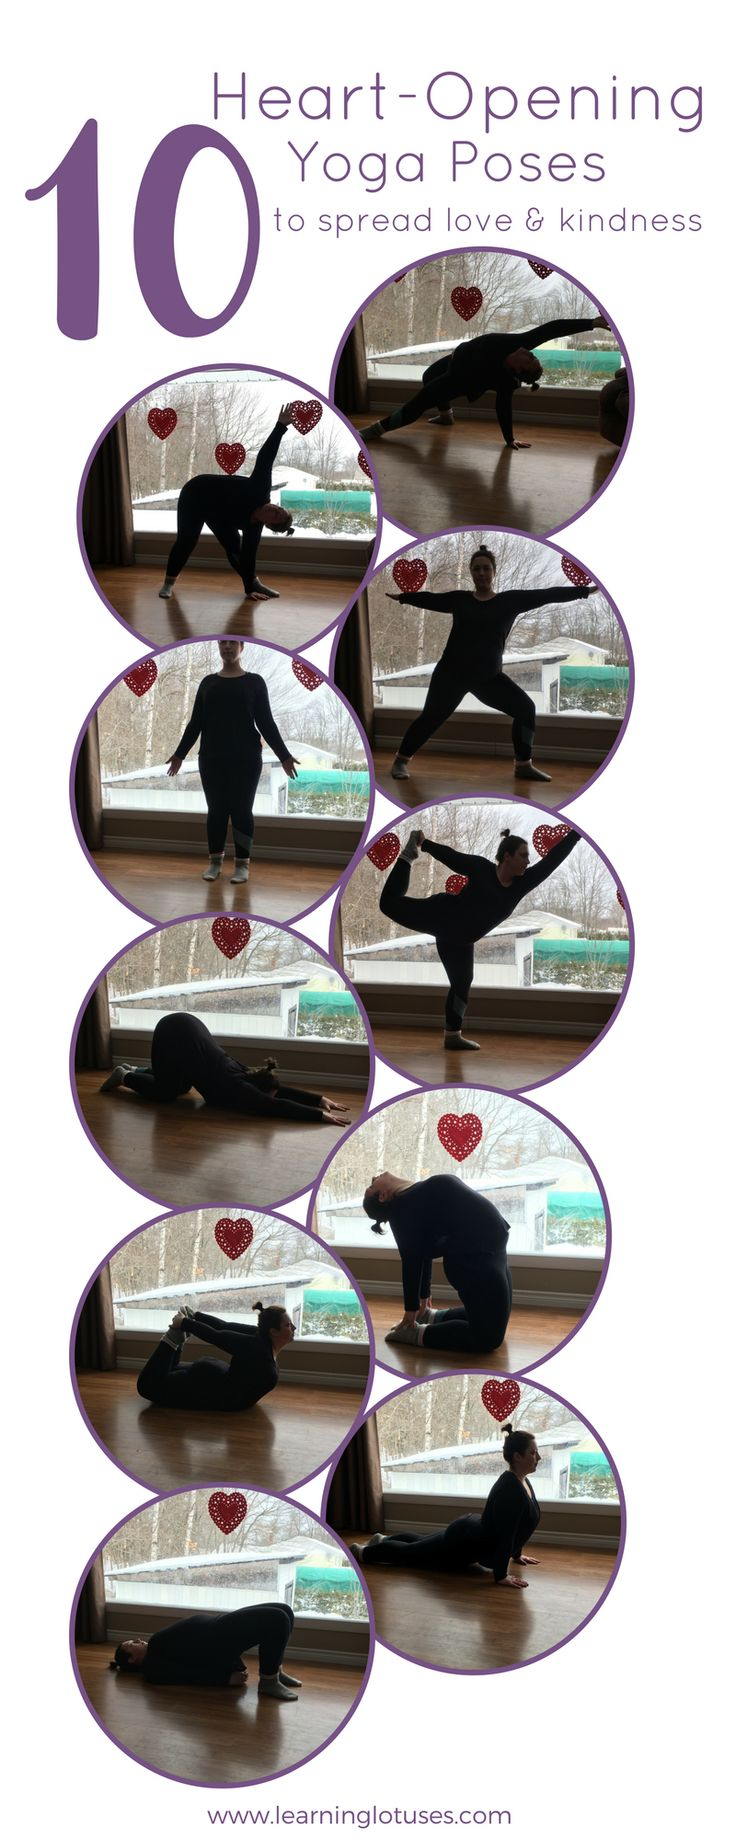 Heart Opening Yoga Poses to Spread Love & Kindness